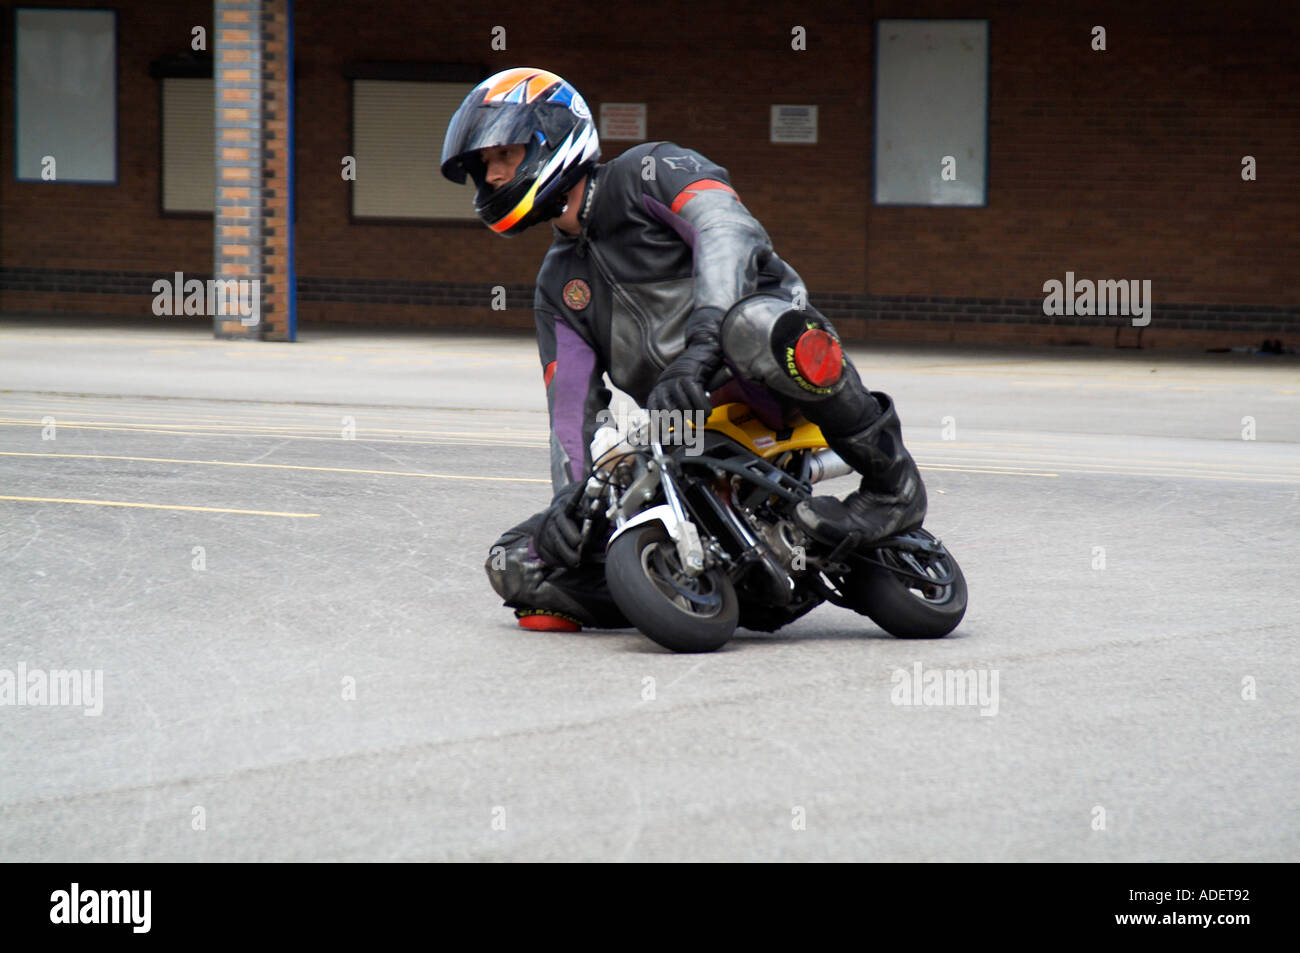 mini moto racing in a car park stock image